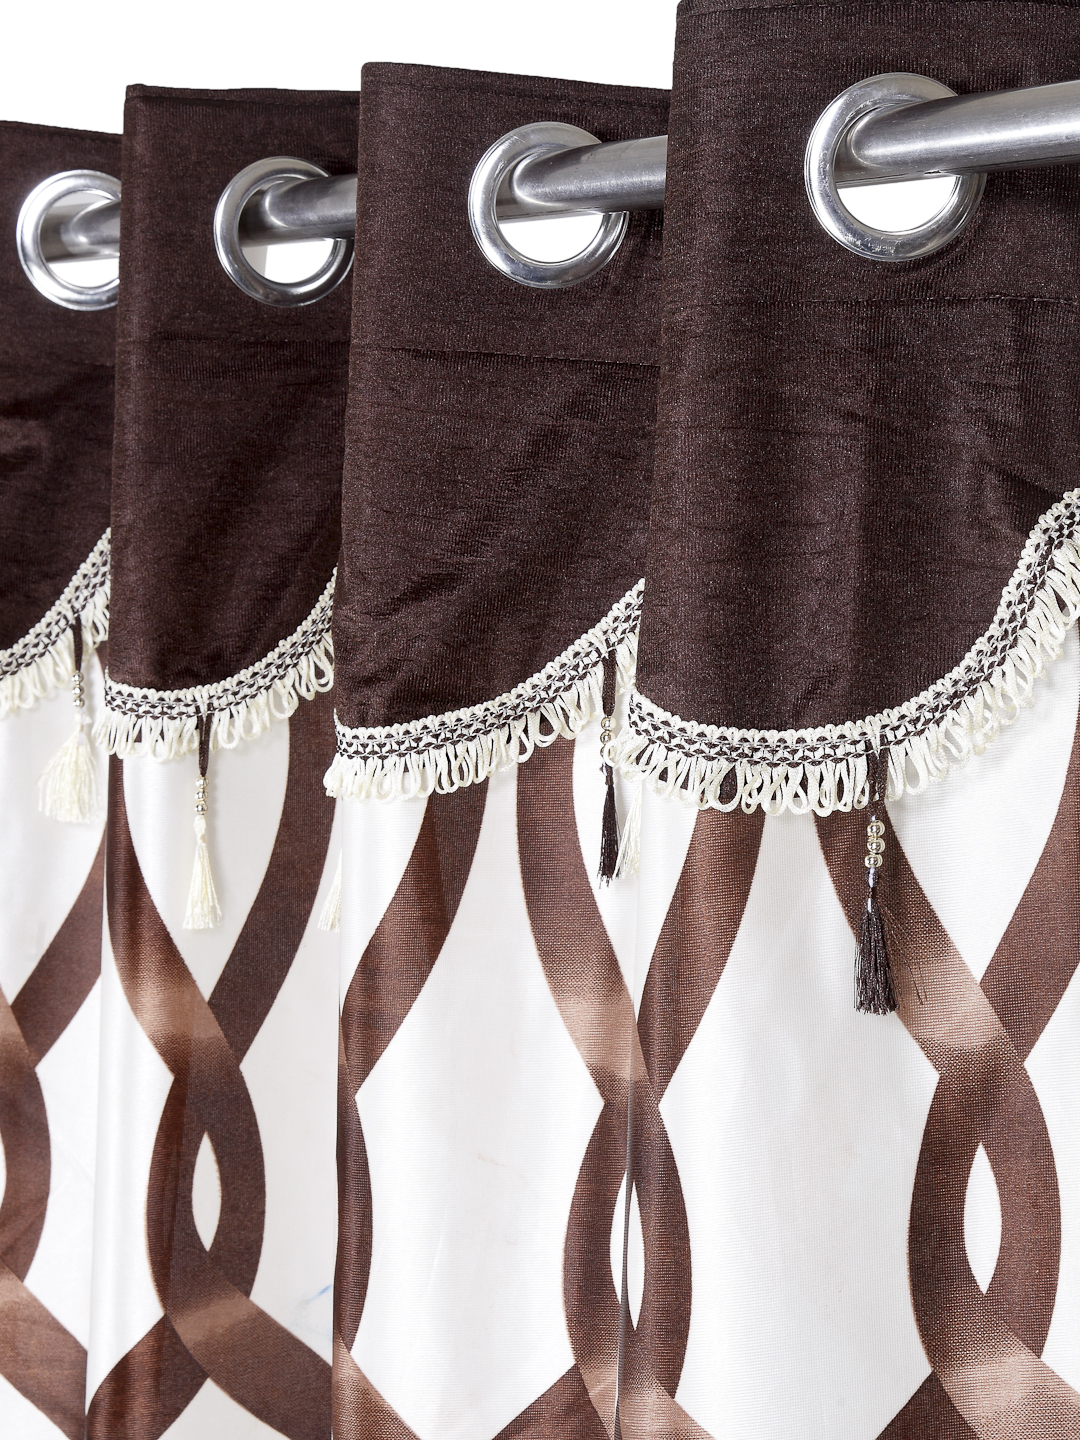 Cortina - Pack of 2 Decorative, Fancy, Eyelet Long Door Curtain set (270 x 115 cm), All over Geometric pattern, Brown, Fringe and tassle detail